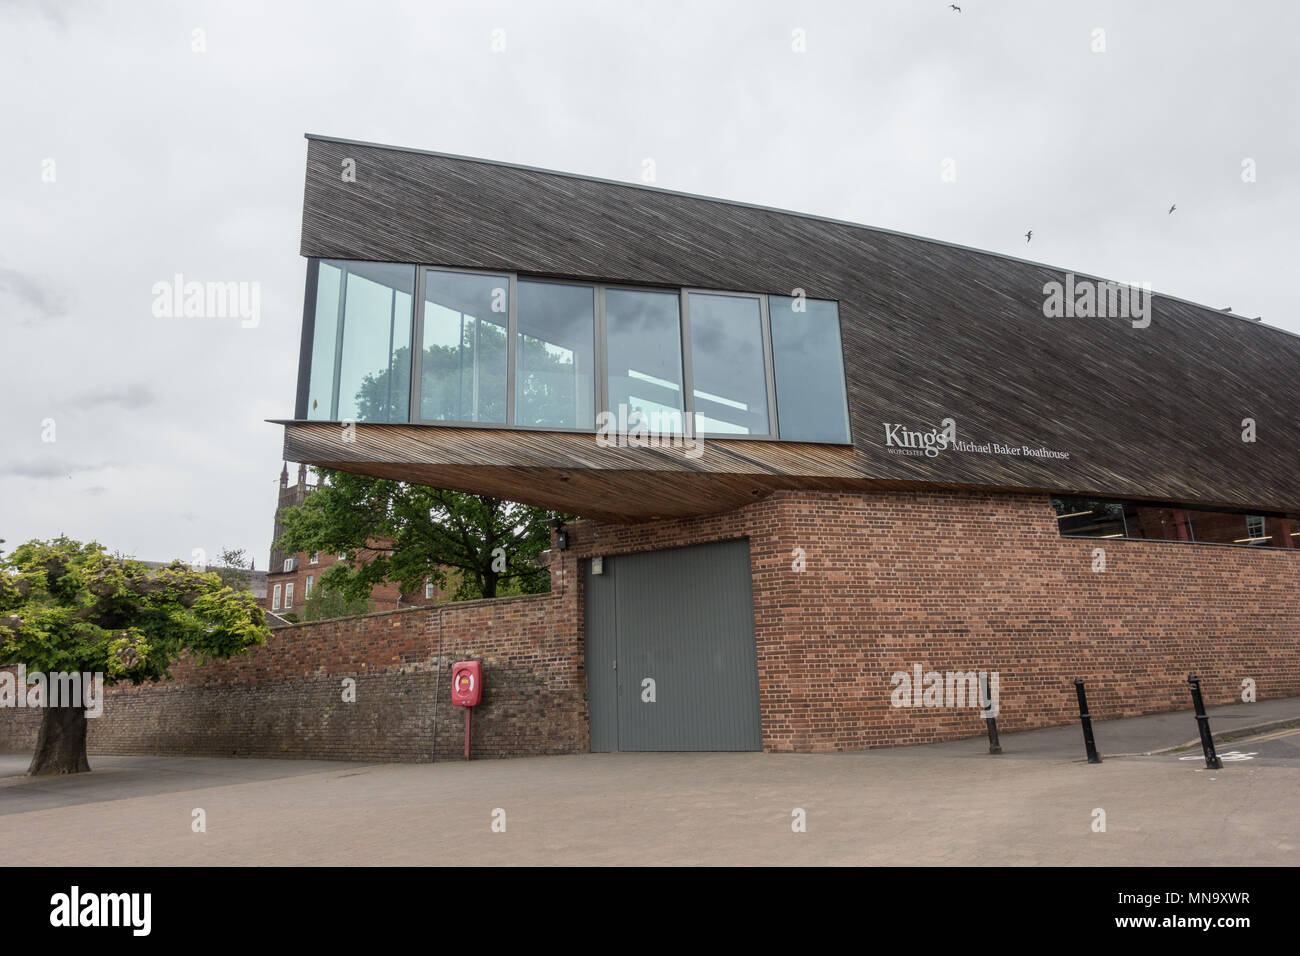 King's school in worcester boat house - Stock Image